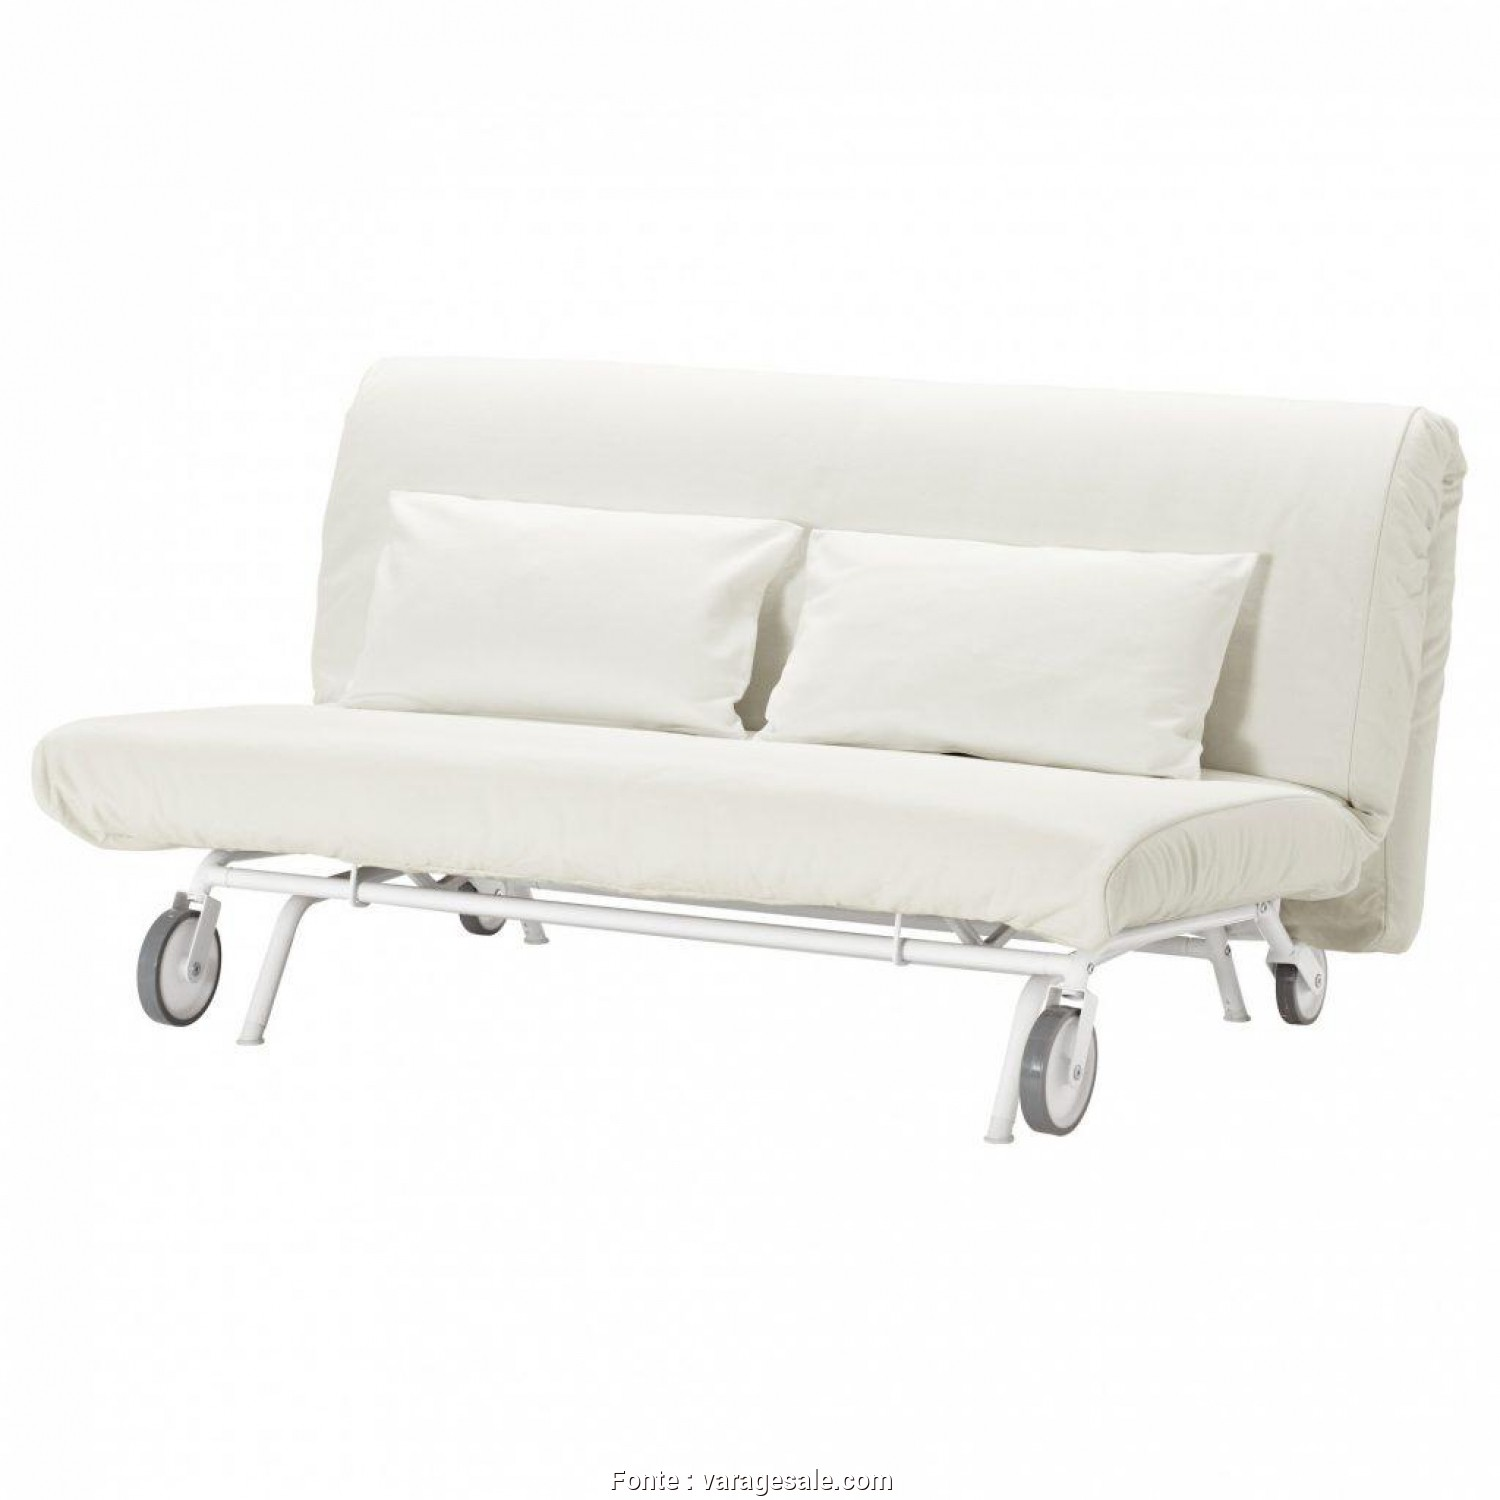 Futon Ikea Cz, Completare Find More Reduced, Ikea Murbo, Seat Sofa, For Sale At Up To, Off, Airdrie, AB